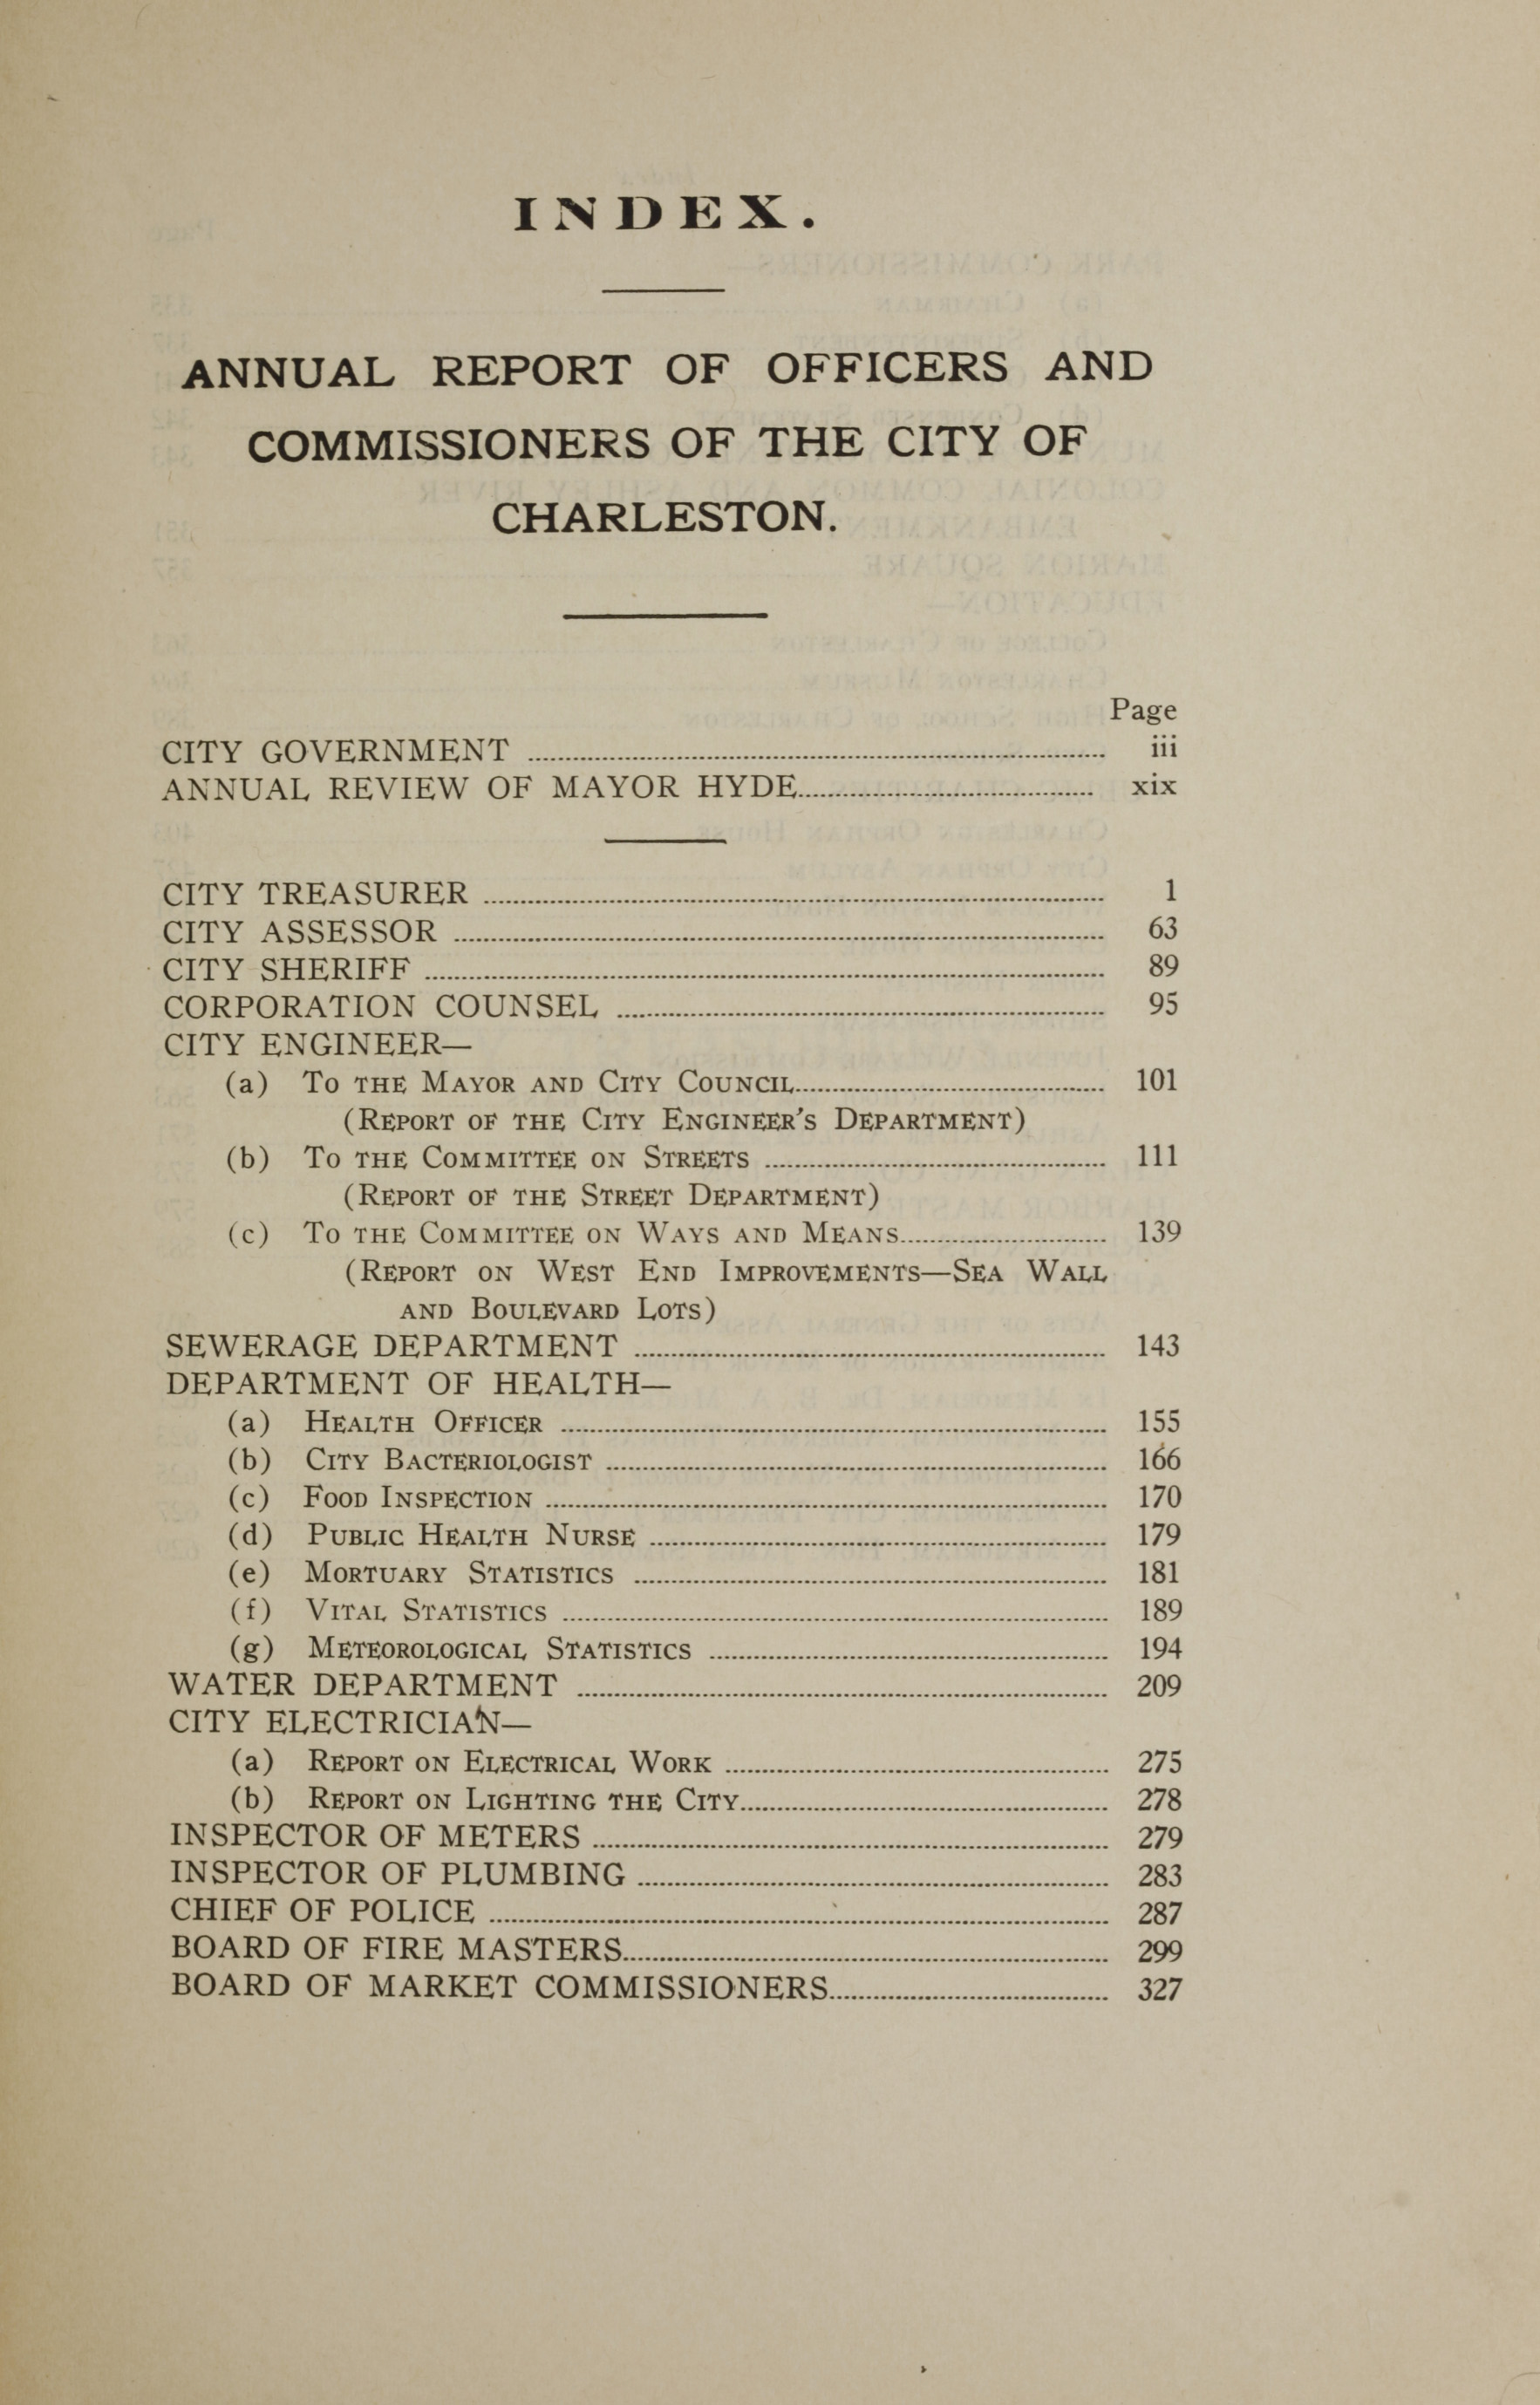 Charleston Yearbook, 1919, page xxvii